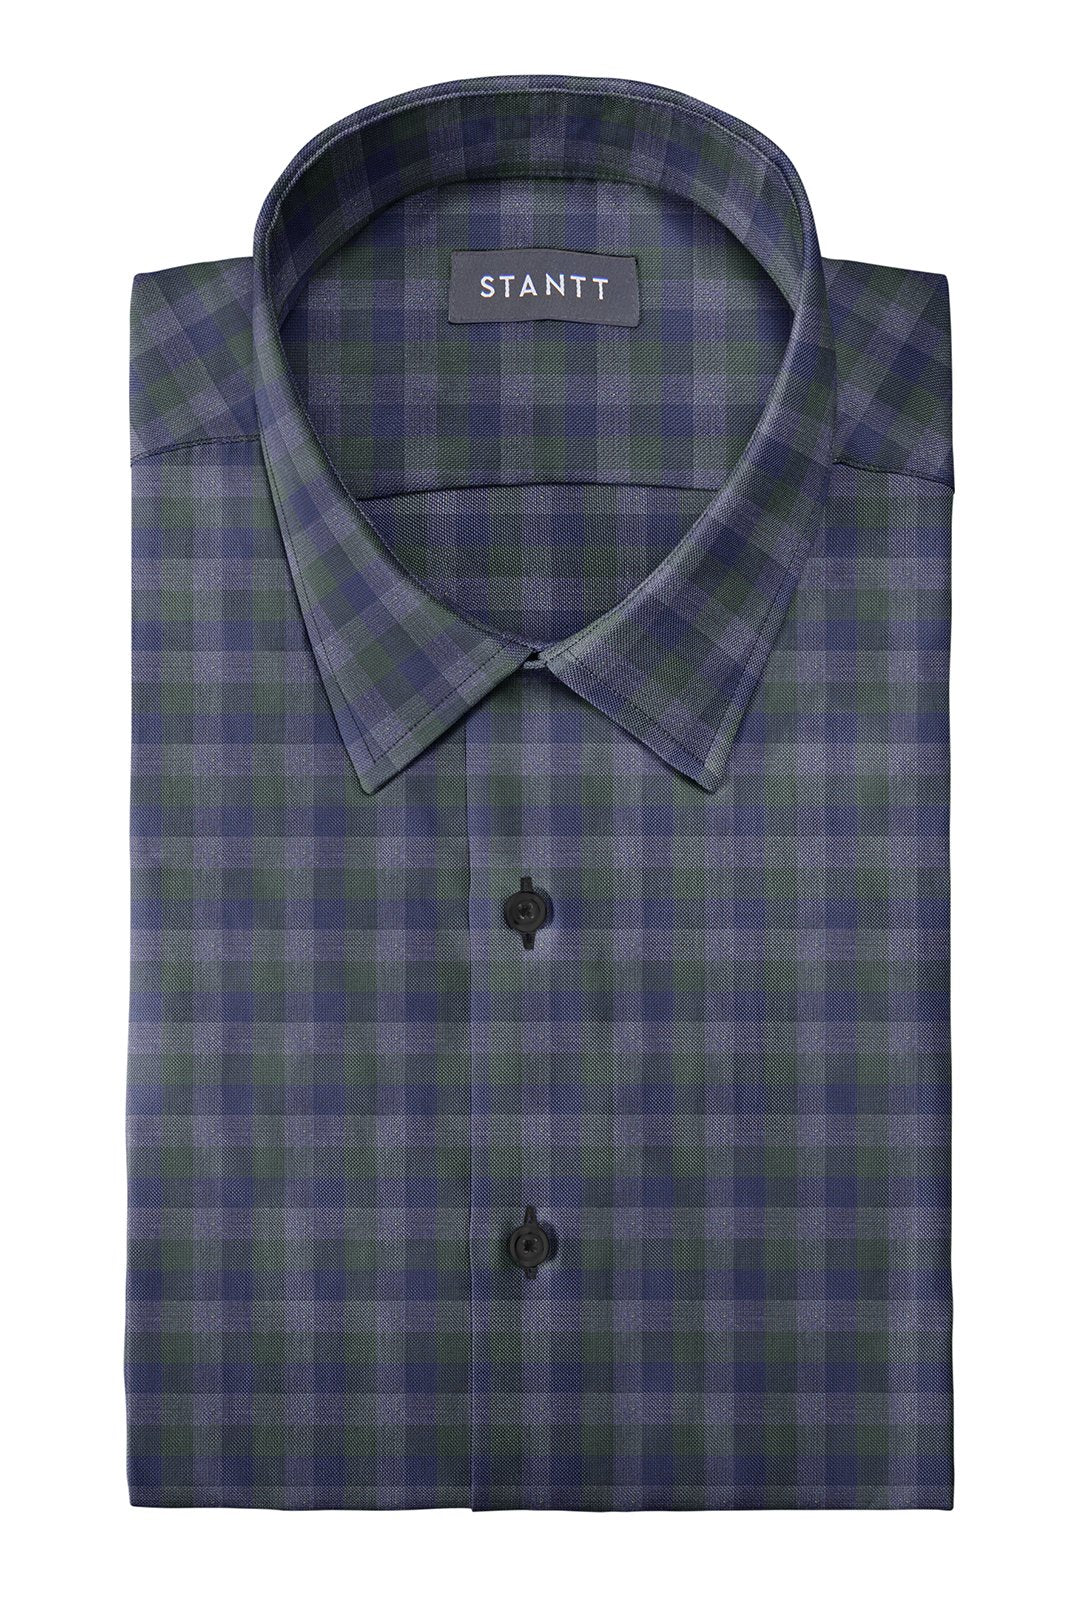 Hunter Green Charcoal Multi Check: Semi-Spread Collar, French Cuff